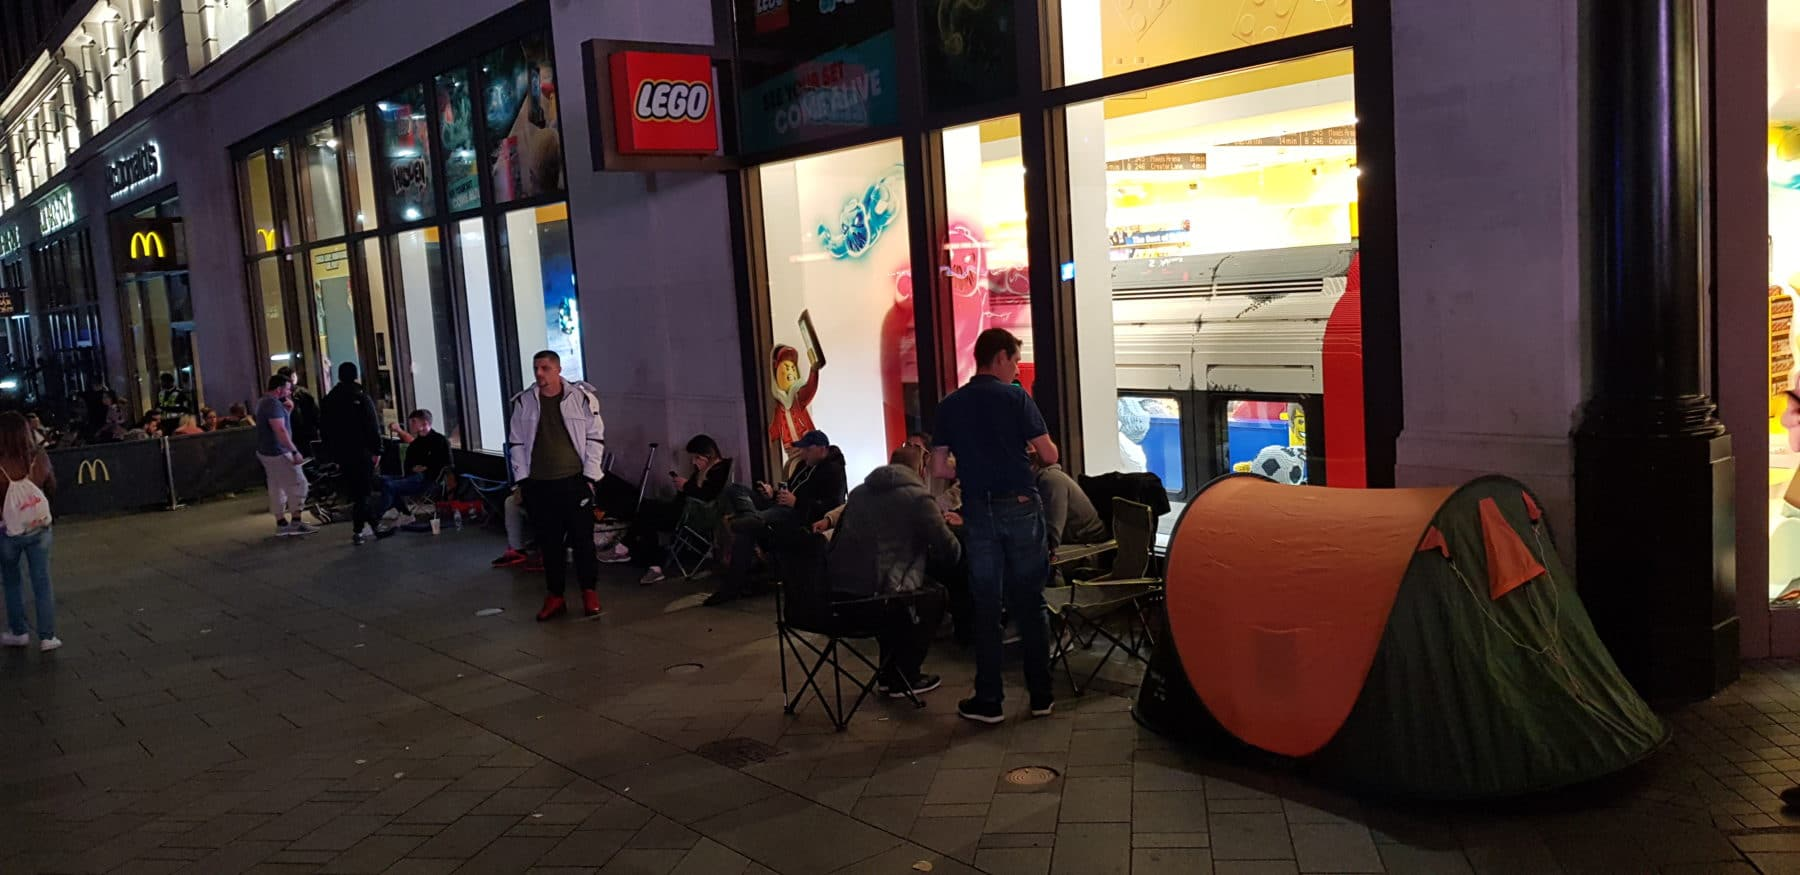 LEGO 75252 Signing Event London Anstehen in der Schlange